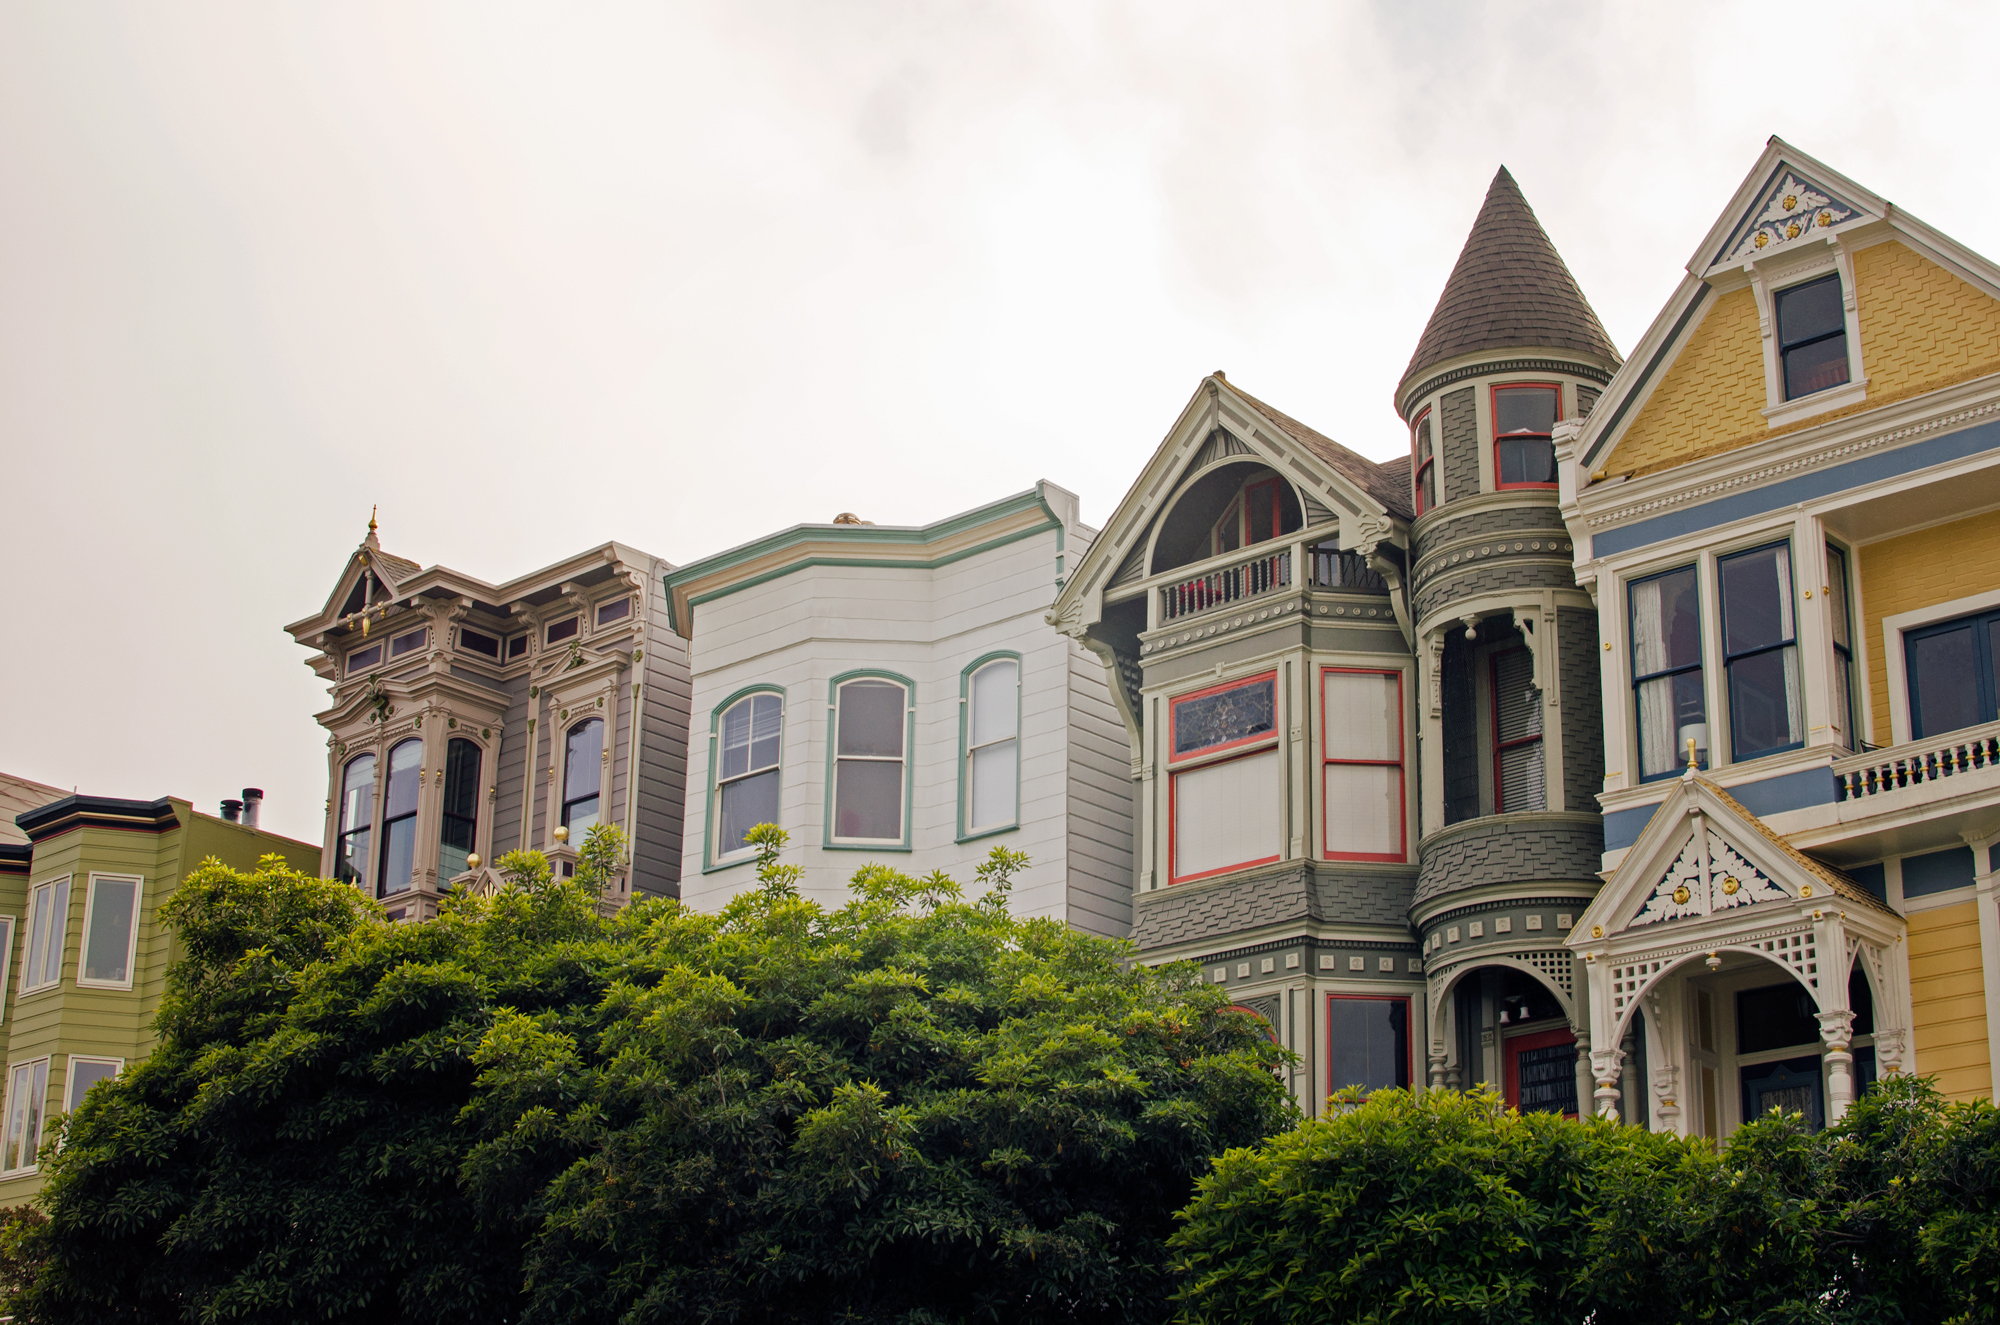 San Francisco victorian houses - my dream homes